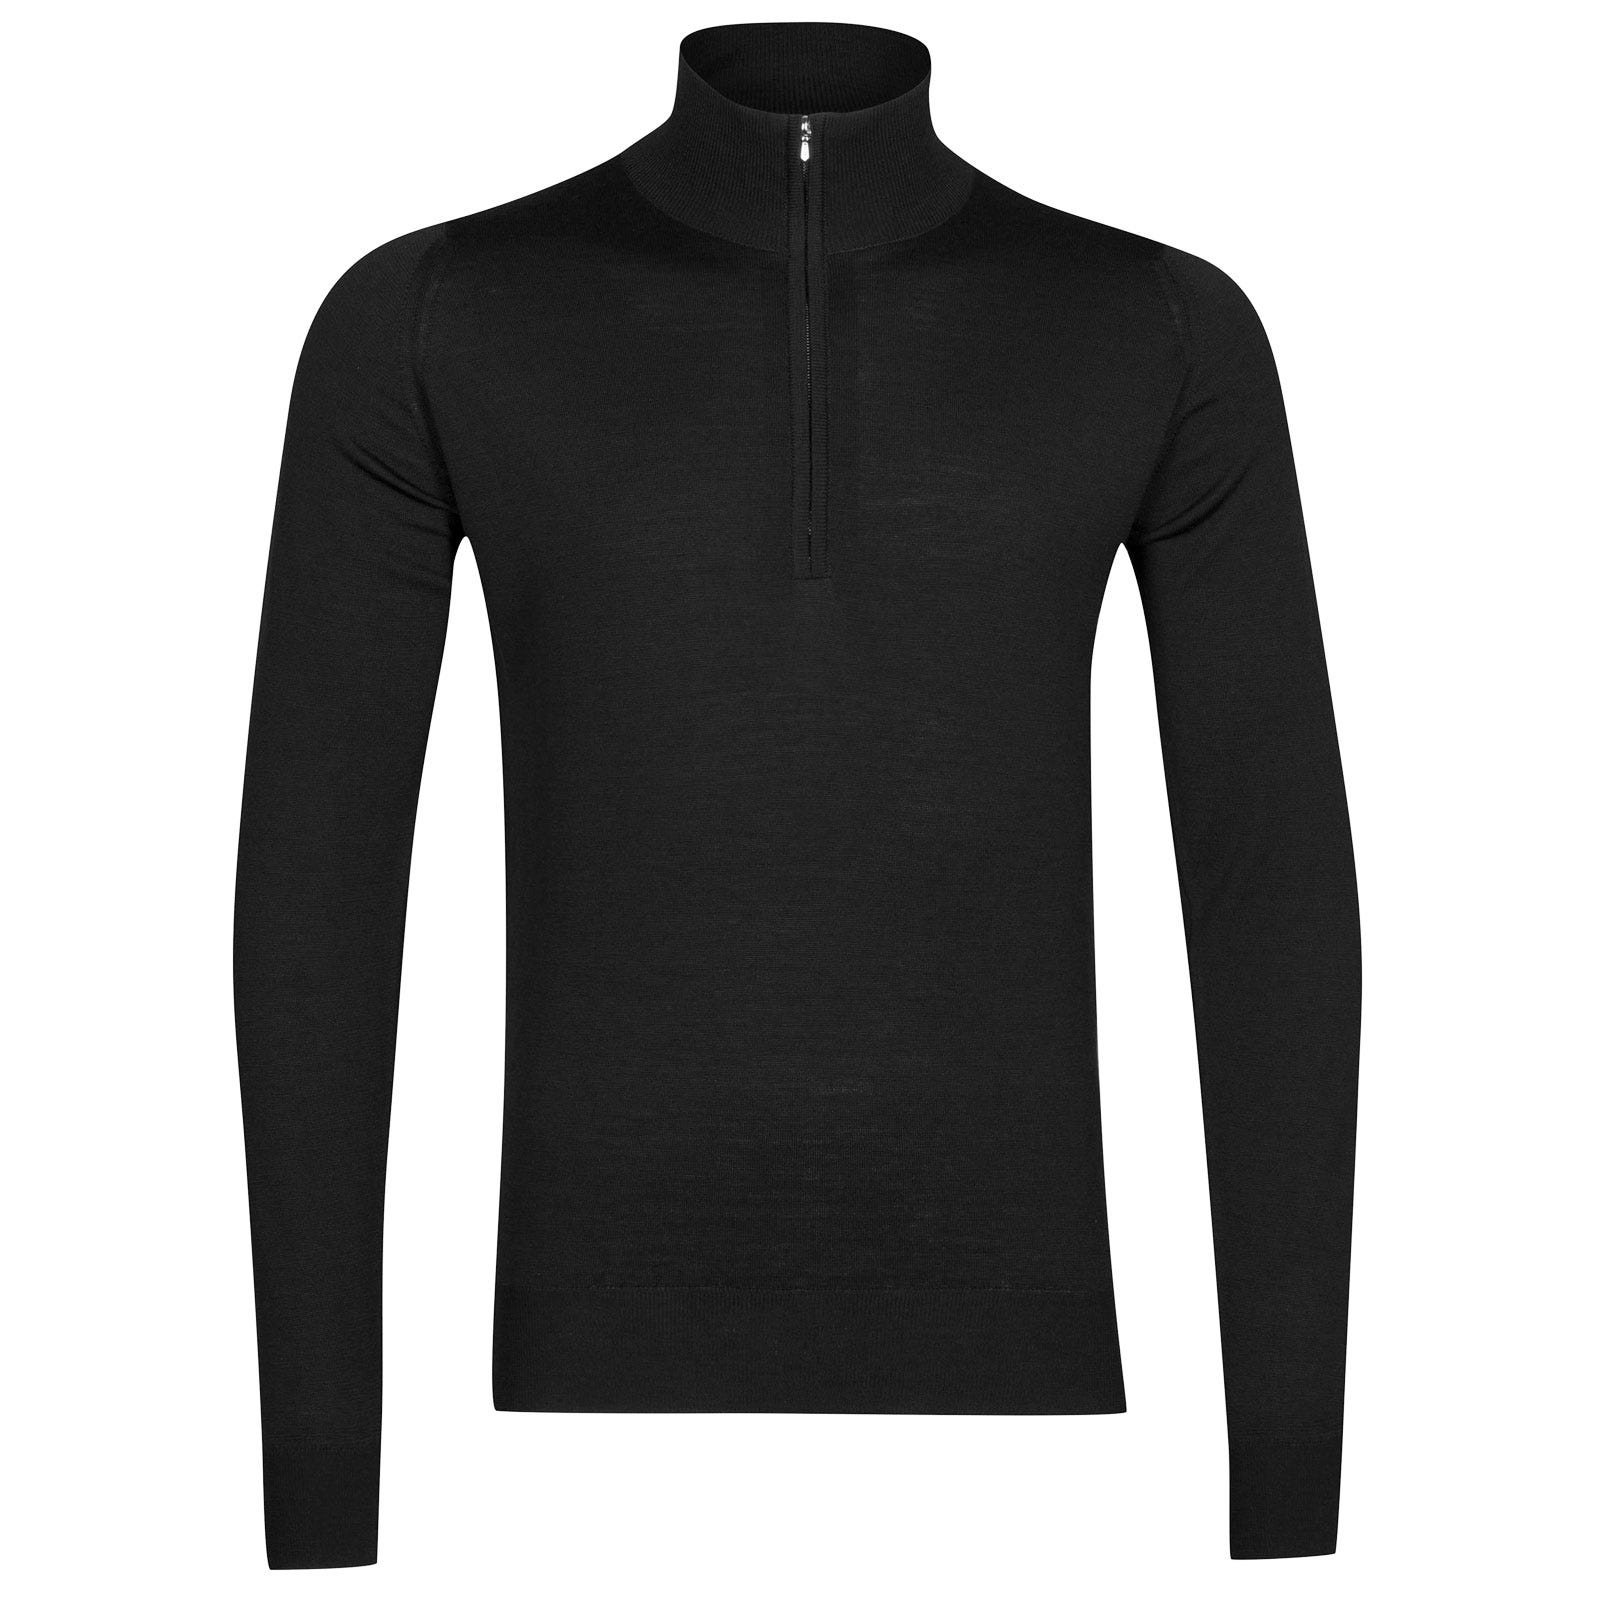 John Smedley Barrow Merino Wool Pullover in Black-S